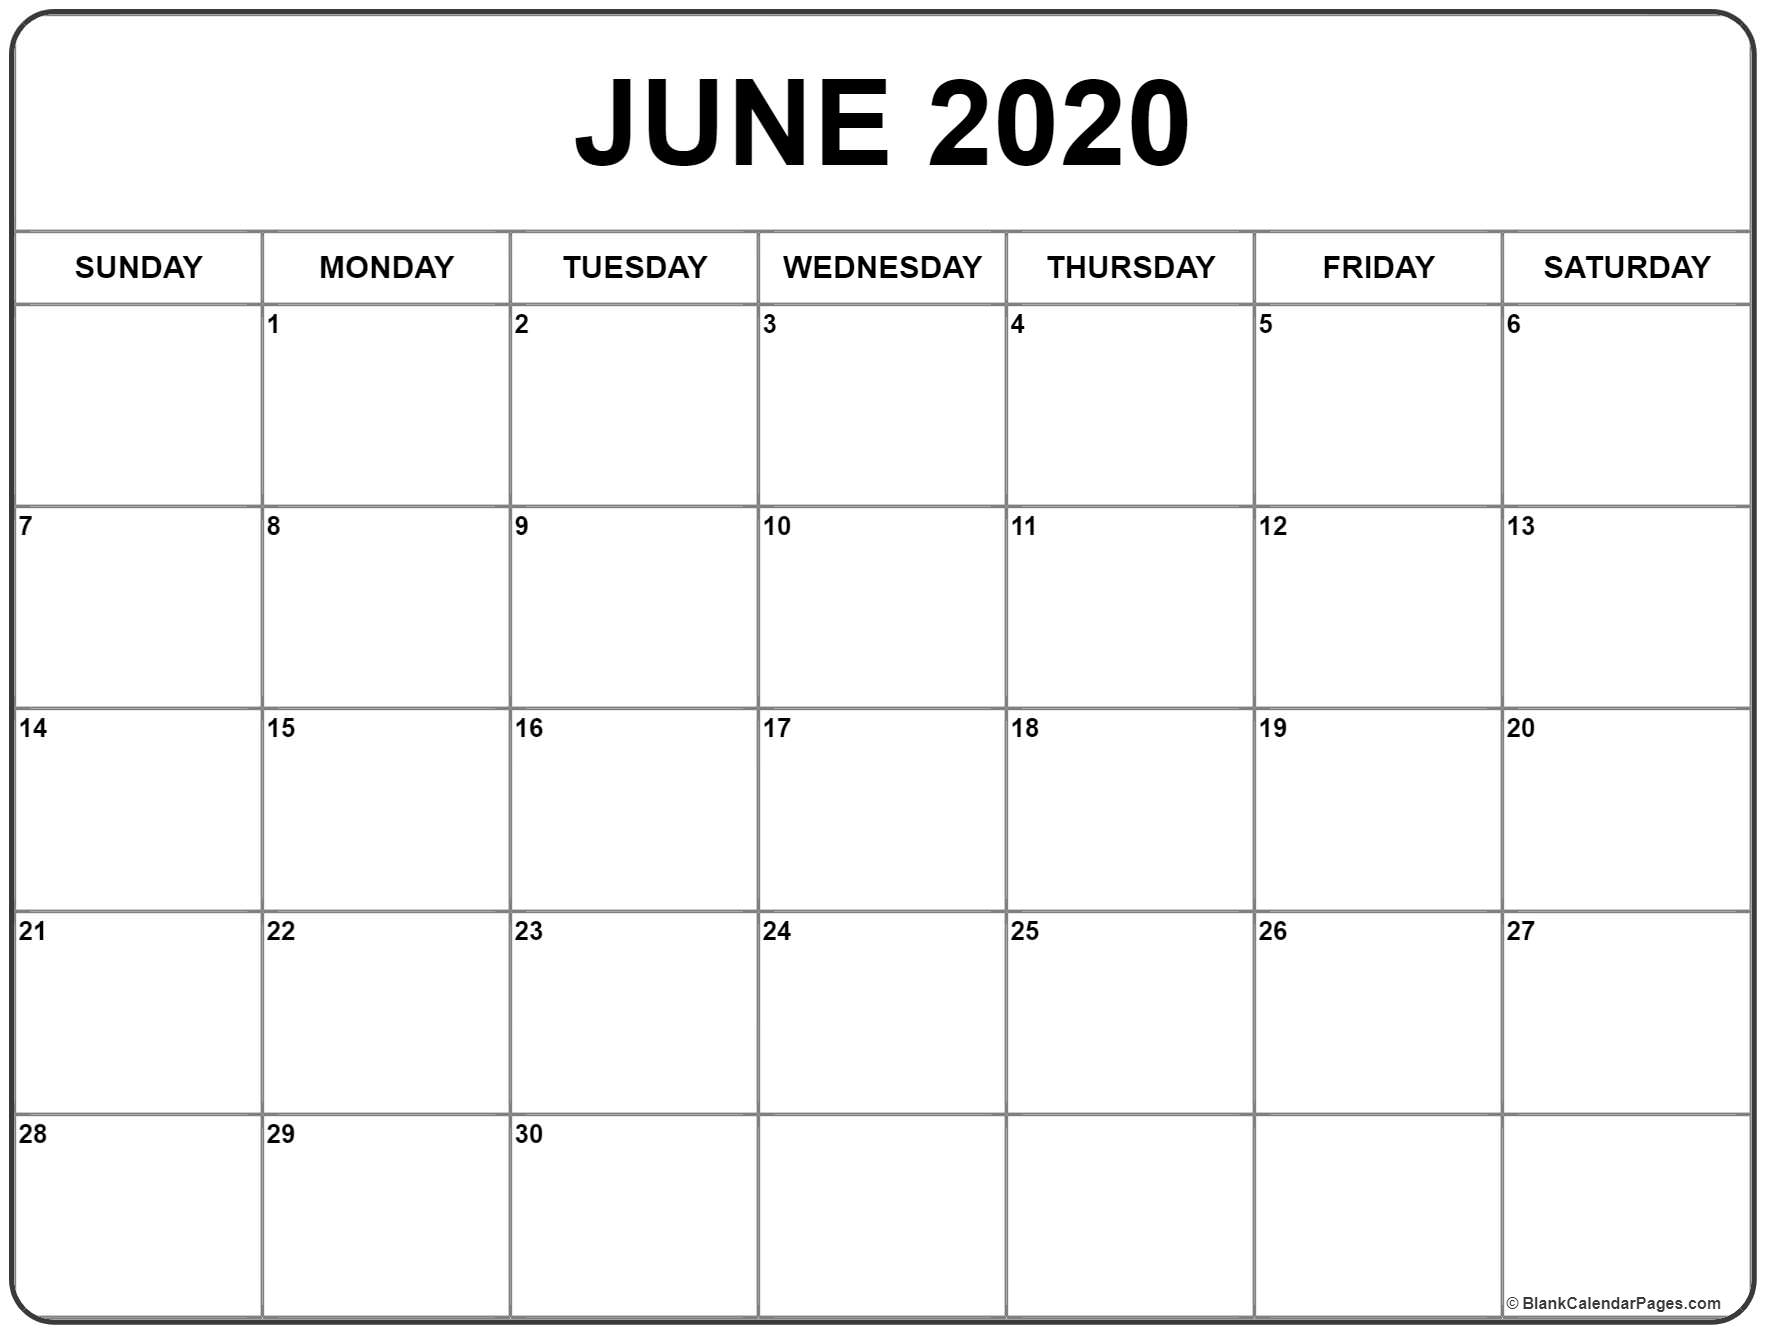 June 2020 Calendar | Free Printable Monthly Calendars for Free Printed Calendars From June 2019 To June 2020